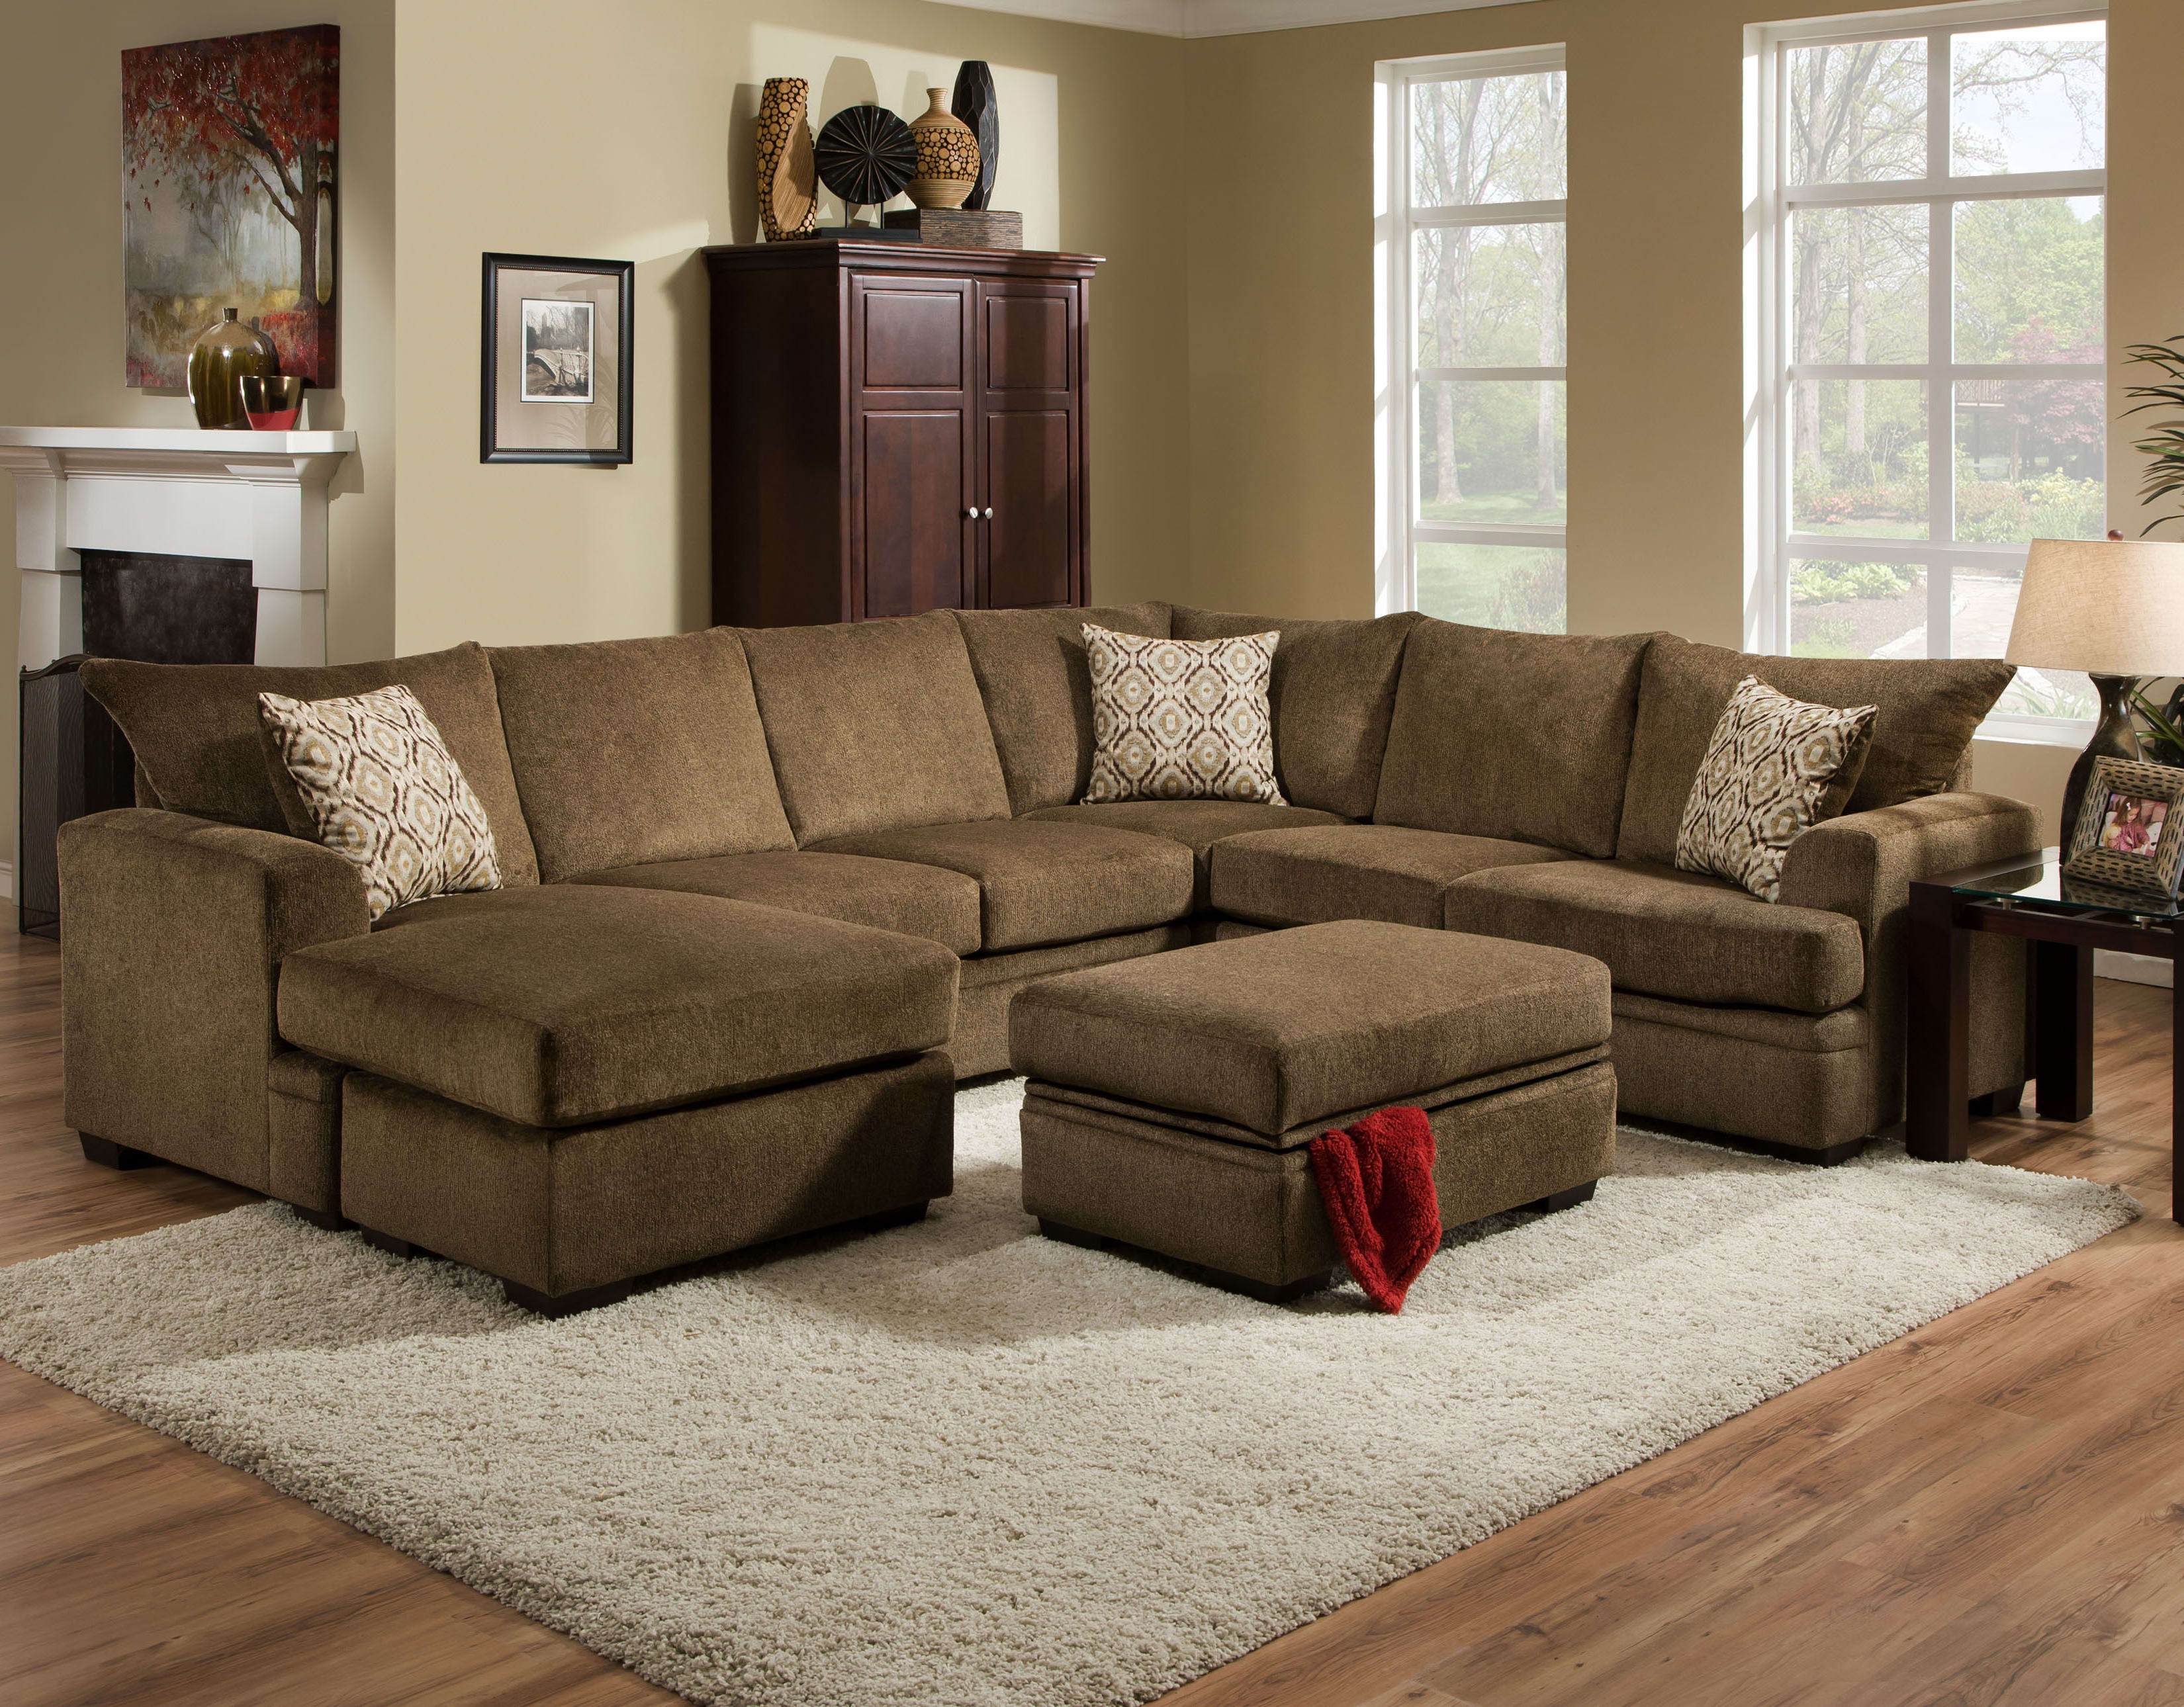 Chelsea Home Atherton Cornell Cocoa 2-Piece Sectional with LAF Sofa on emerald home furniture, williams home furniture, tracy home furniture, madera home furniture, davis home furniture,